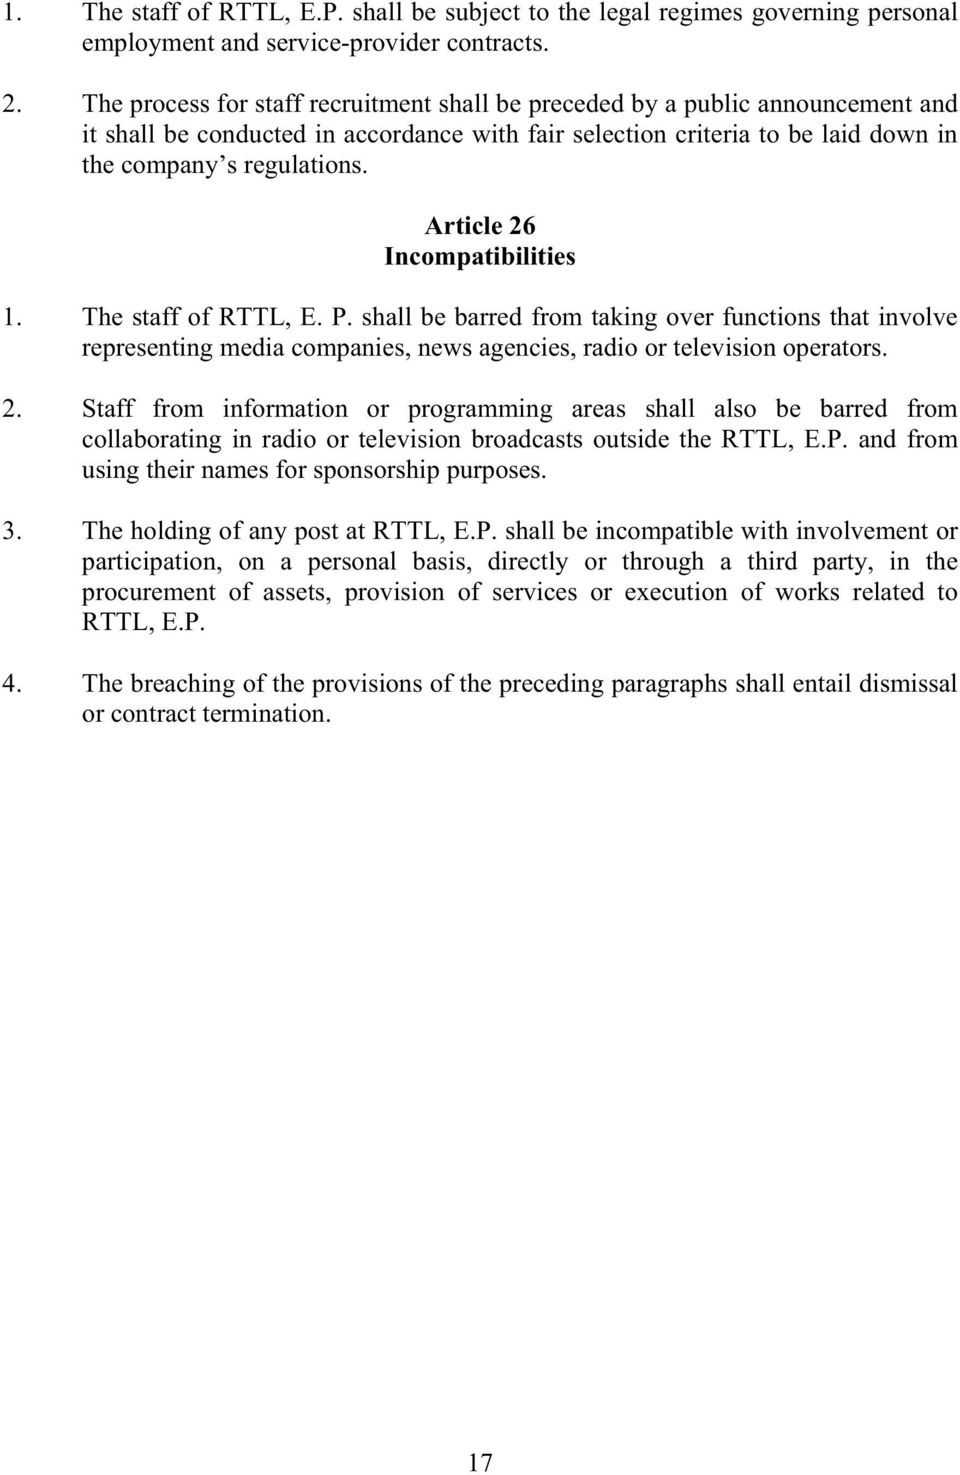 Article 26 Incompatibilities 1. The staff of RTTL, E. P. shall be barred from taking over functions that involve representing media companies, news agencies, radio or television operators. 2. Staff from information or programming areas shall also be barred from collaborating in radio or television broadcasts outside the RTTL, E.